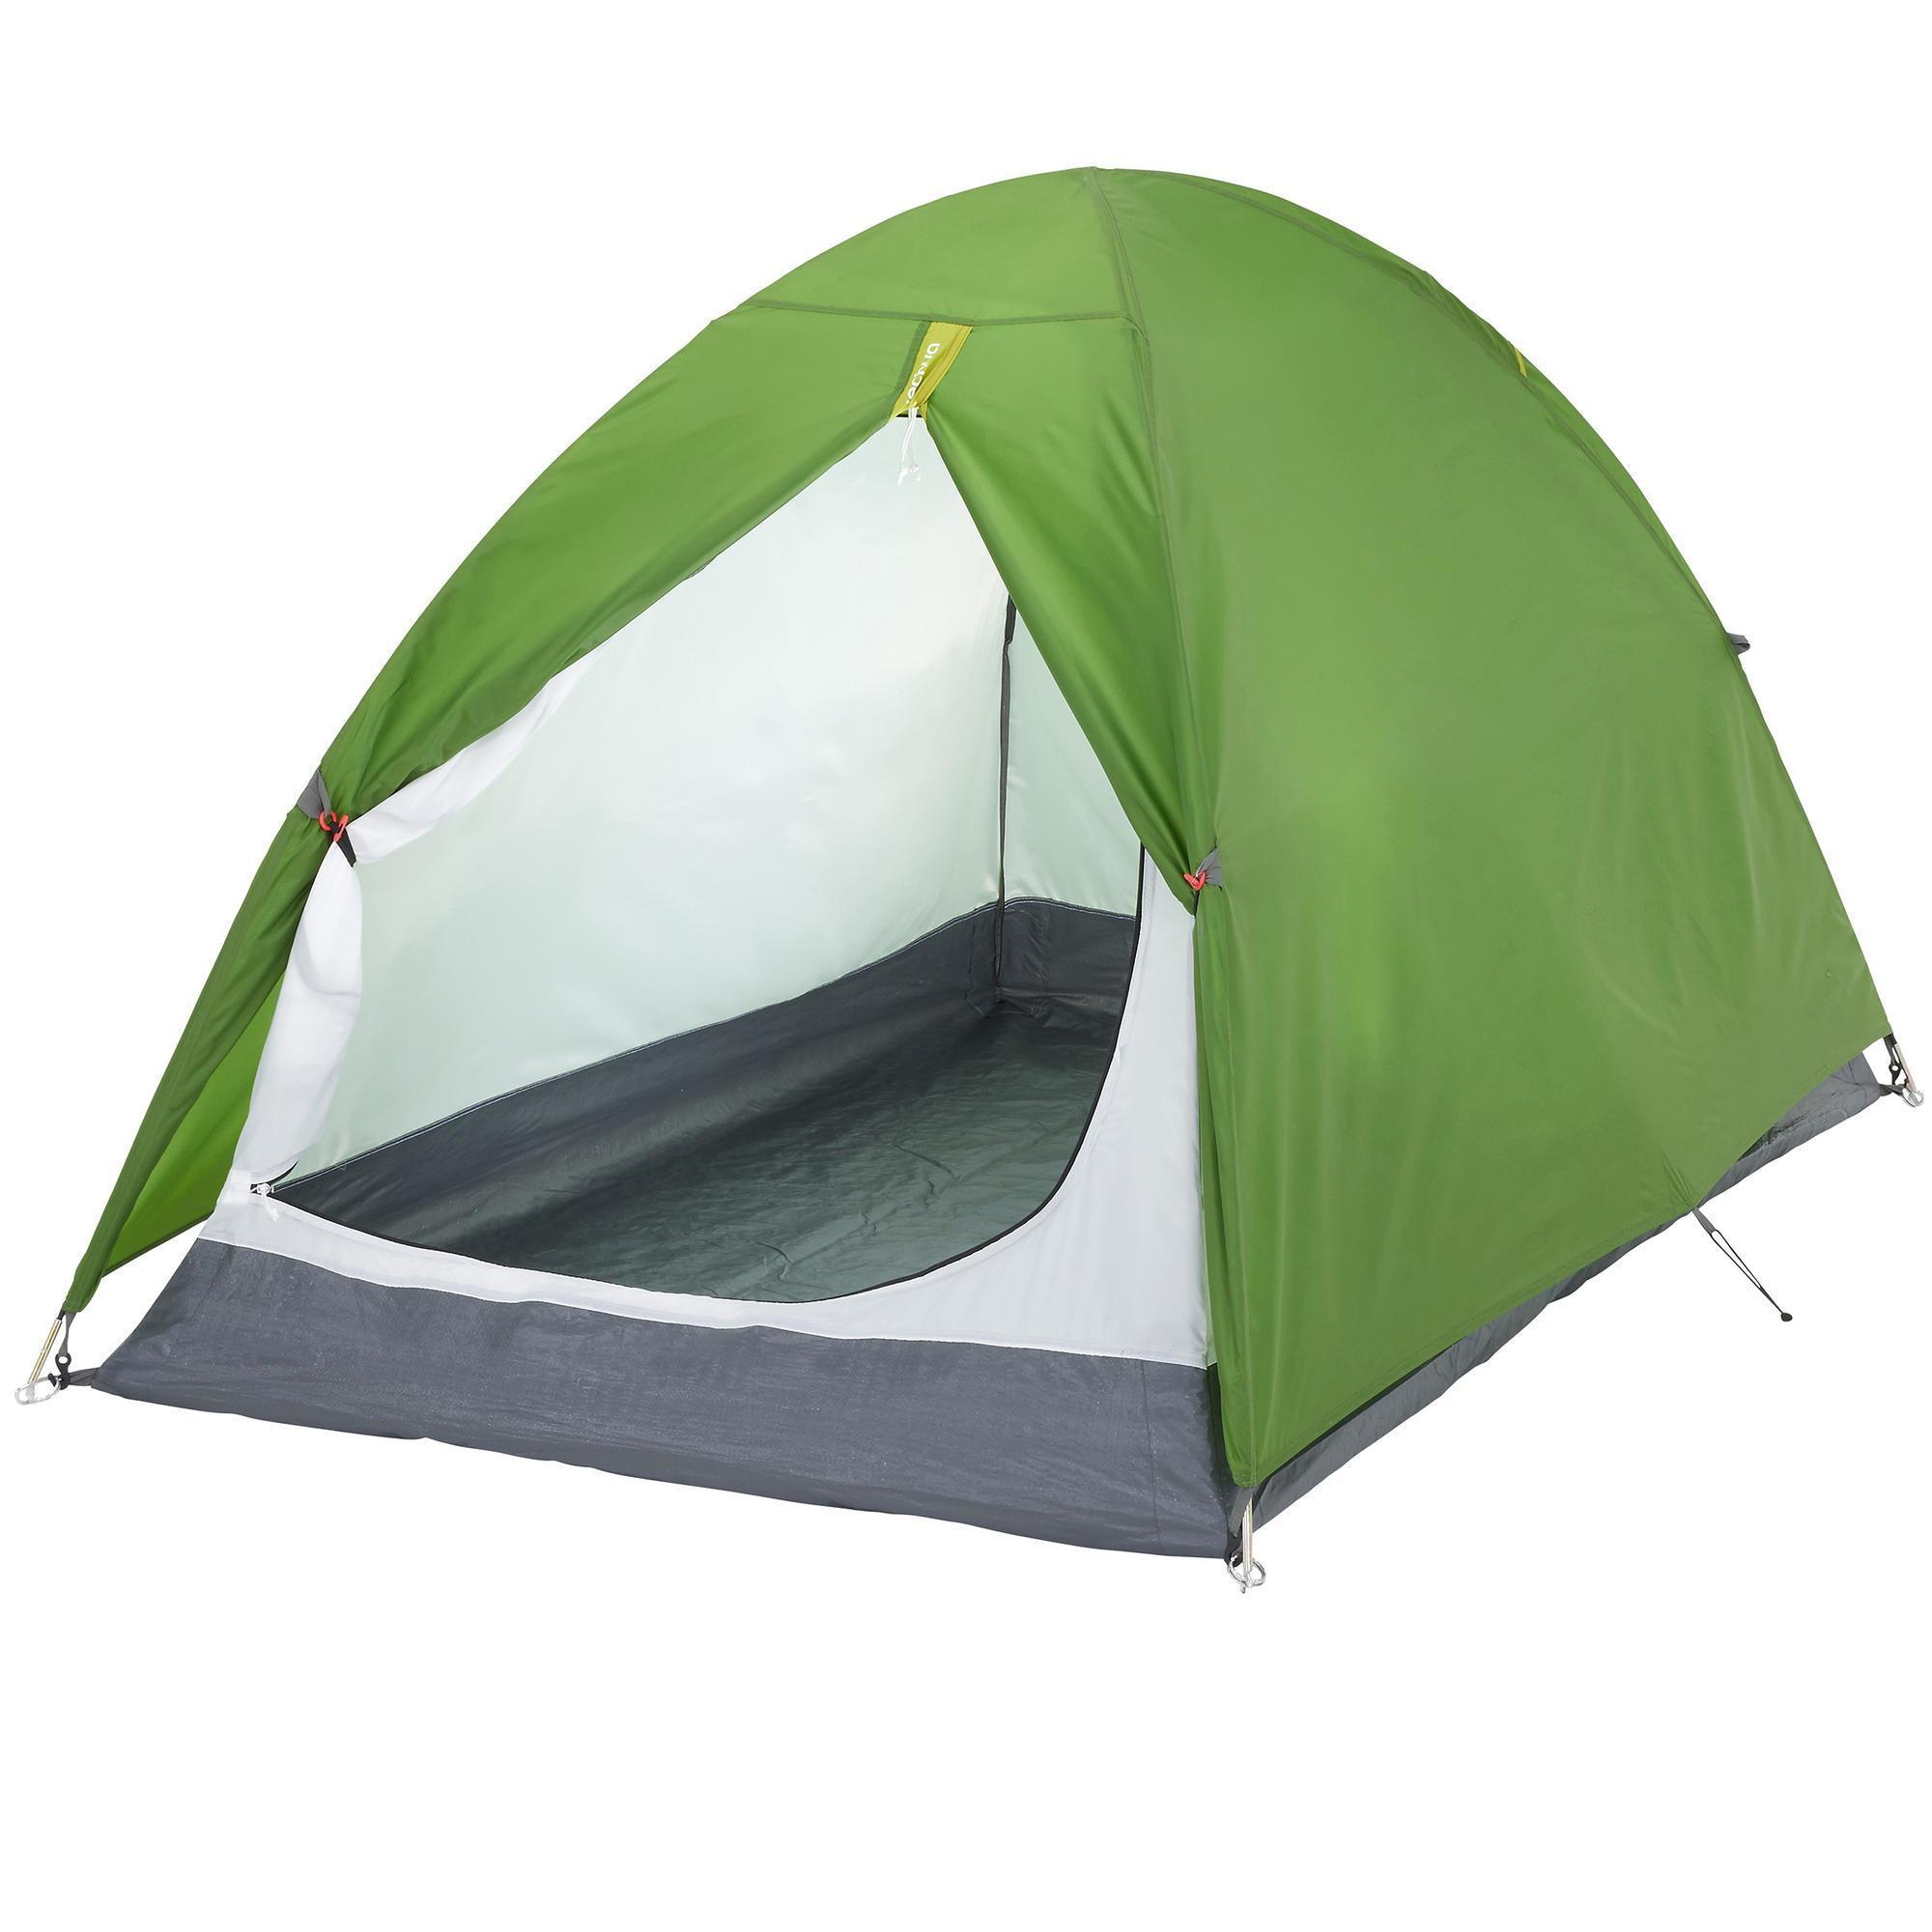 ARPENAZ 2-man green  sc 1 st  Quechua & Camping tents for 1 to 3 people | Quechua